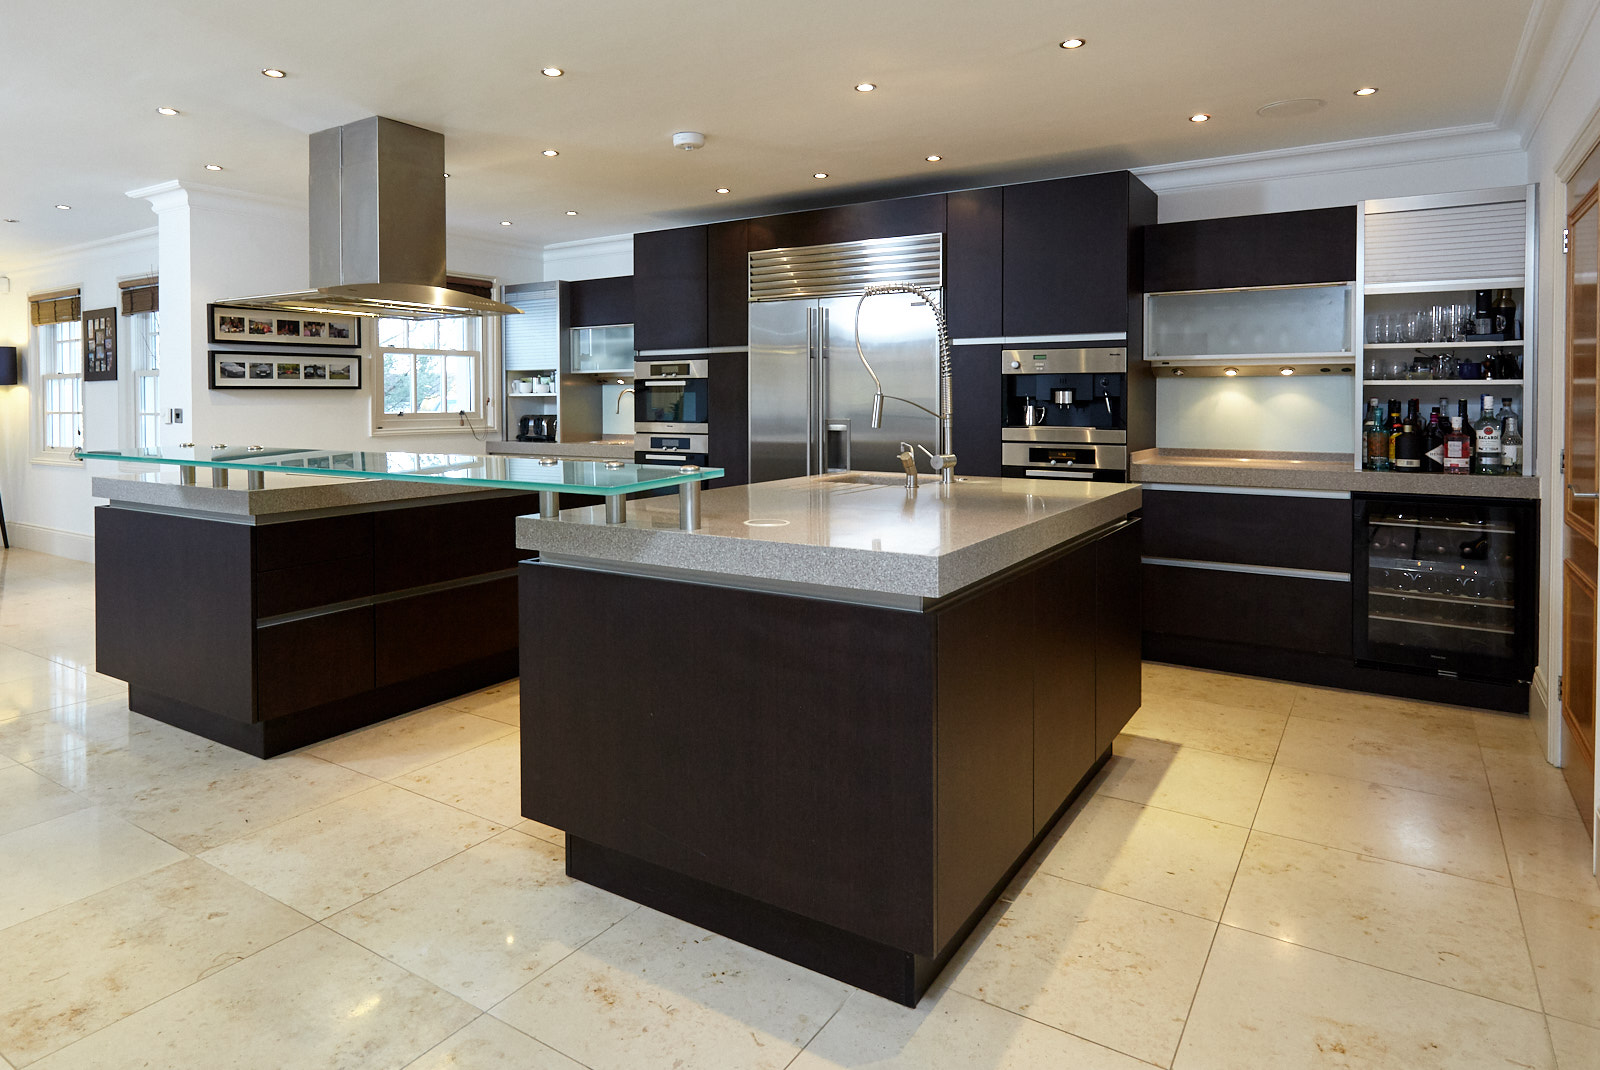 Ex Display Kitchen Islands Available Immediately! Very Large Siematic Used Kitchen